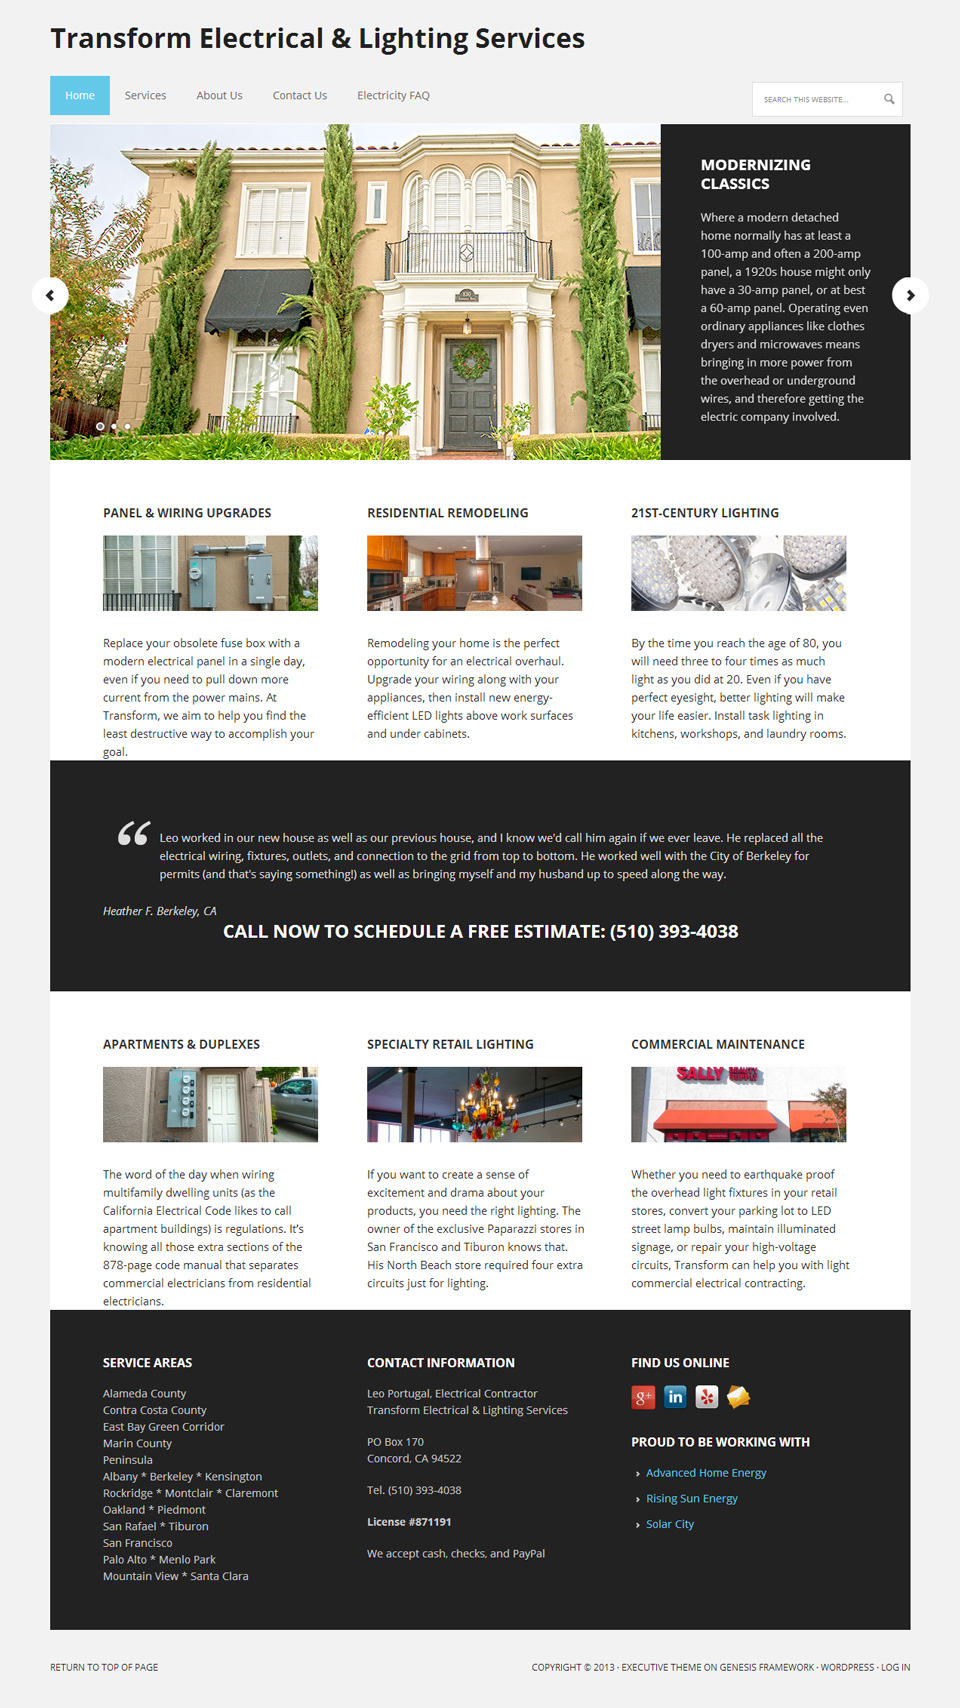 Transform Electric Home Page